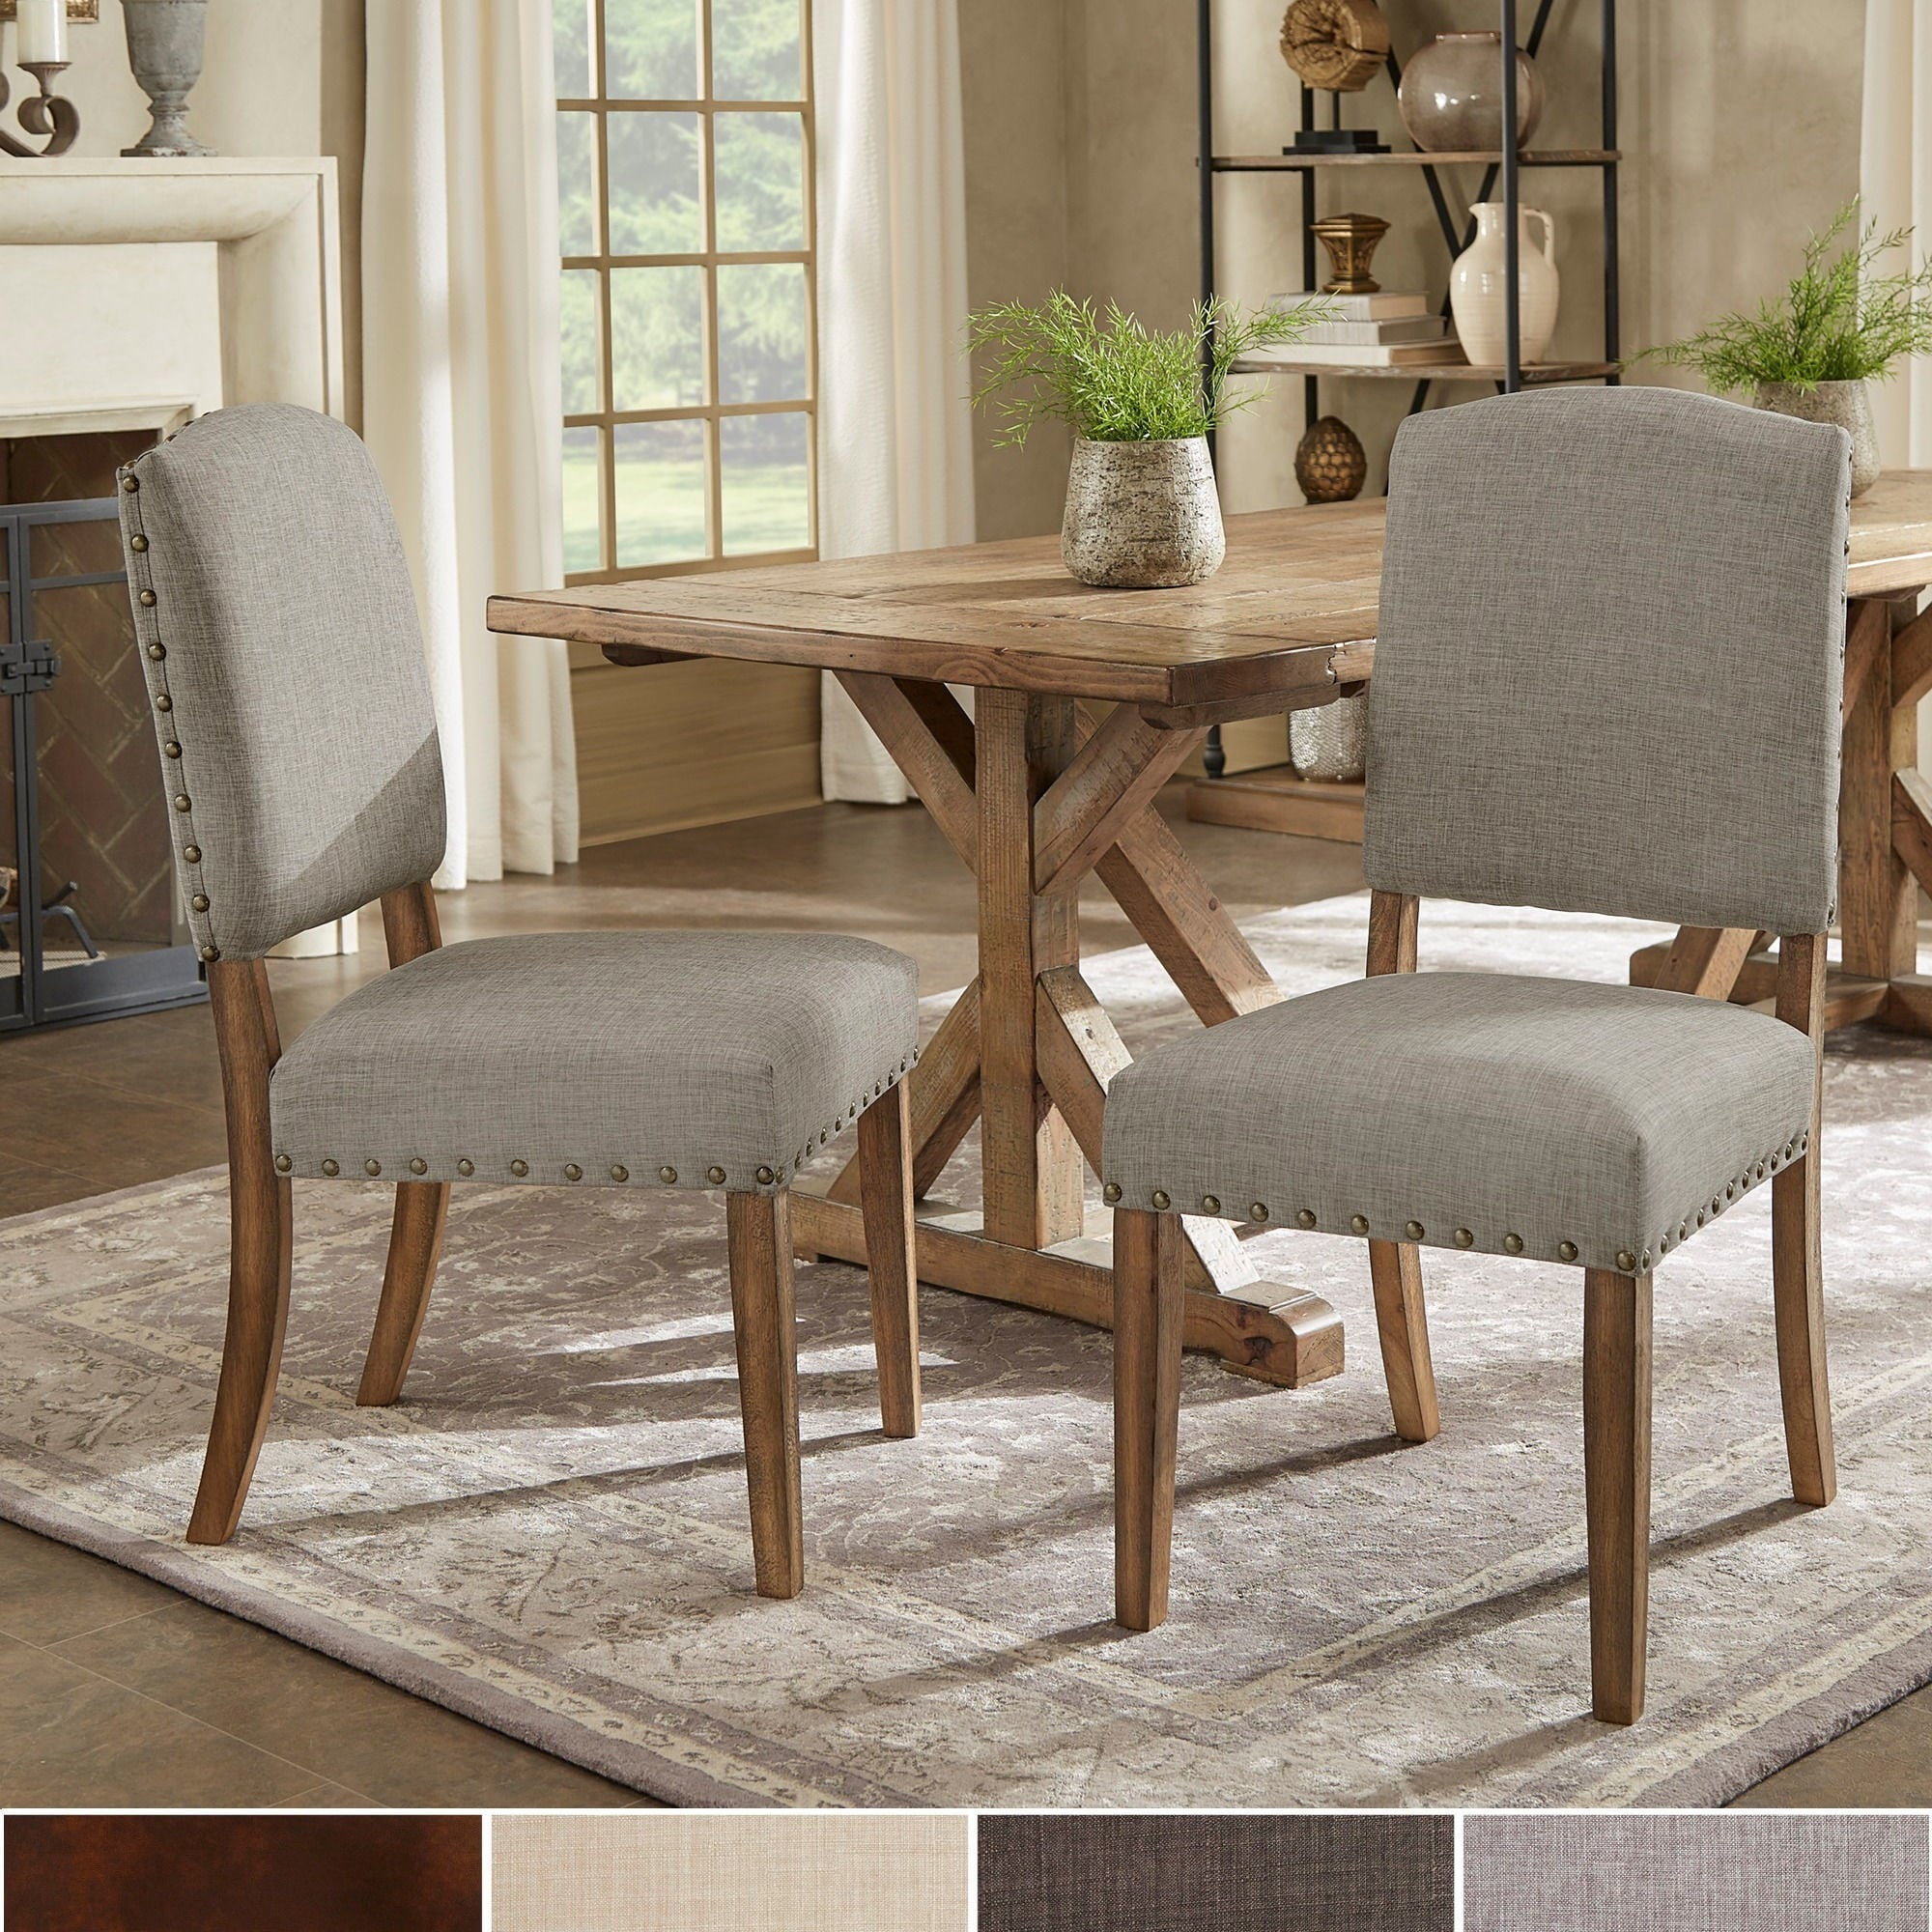 overstock com dining room chairs knoll bulldog chair 1000 43 images about barbanente kitchen on pinterest